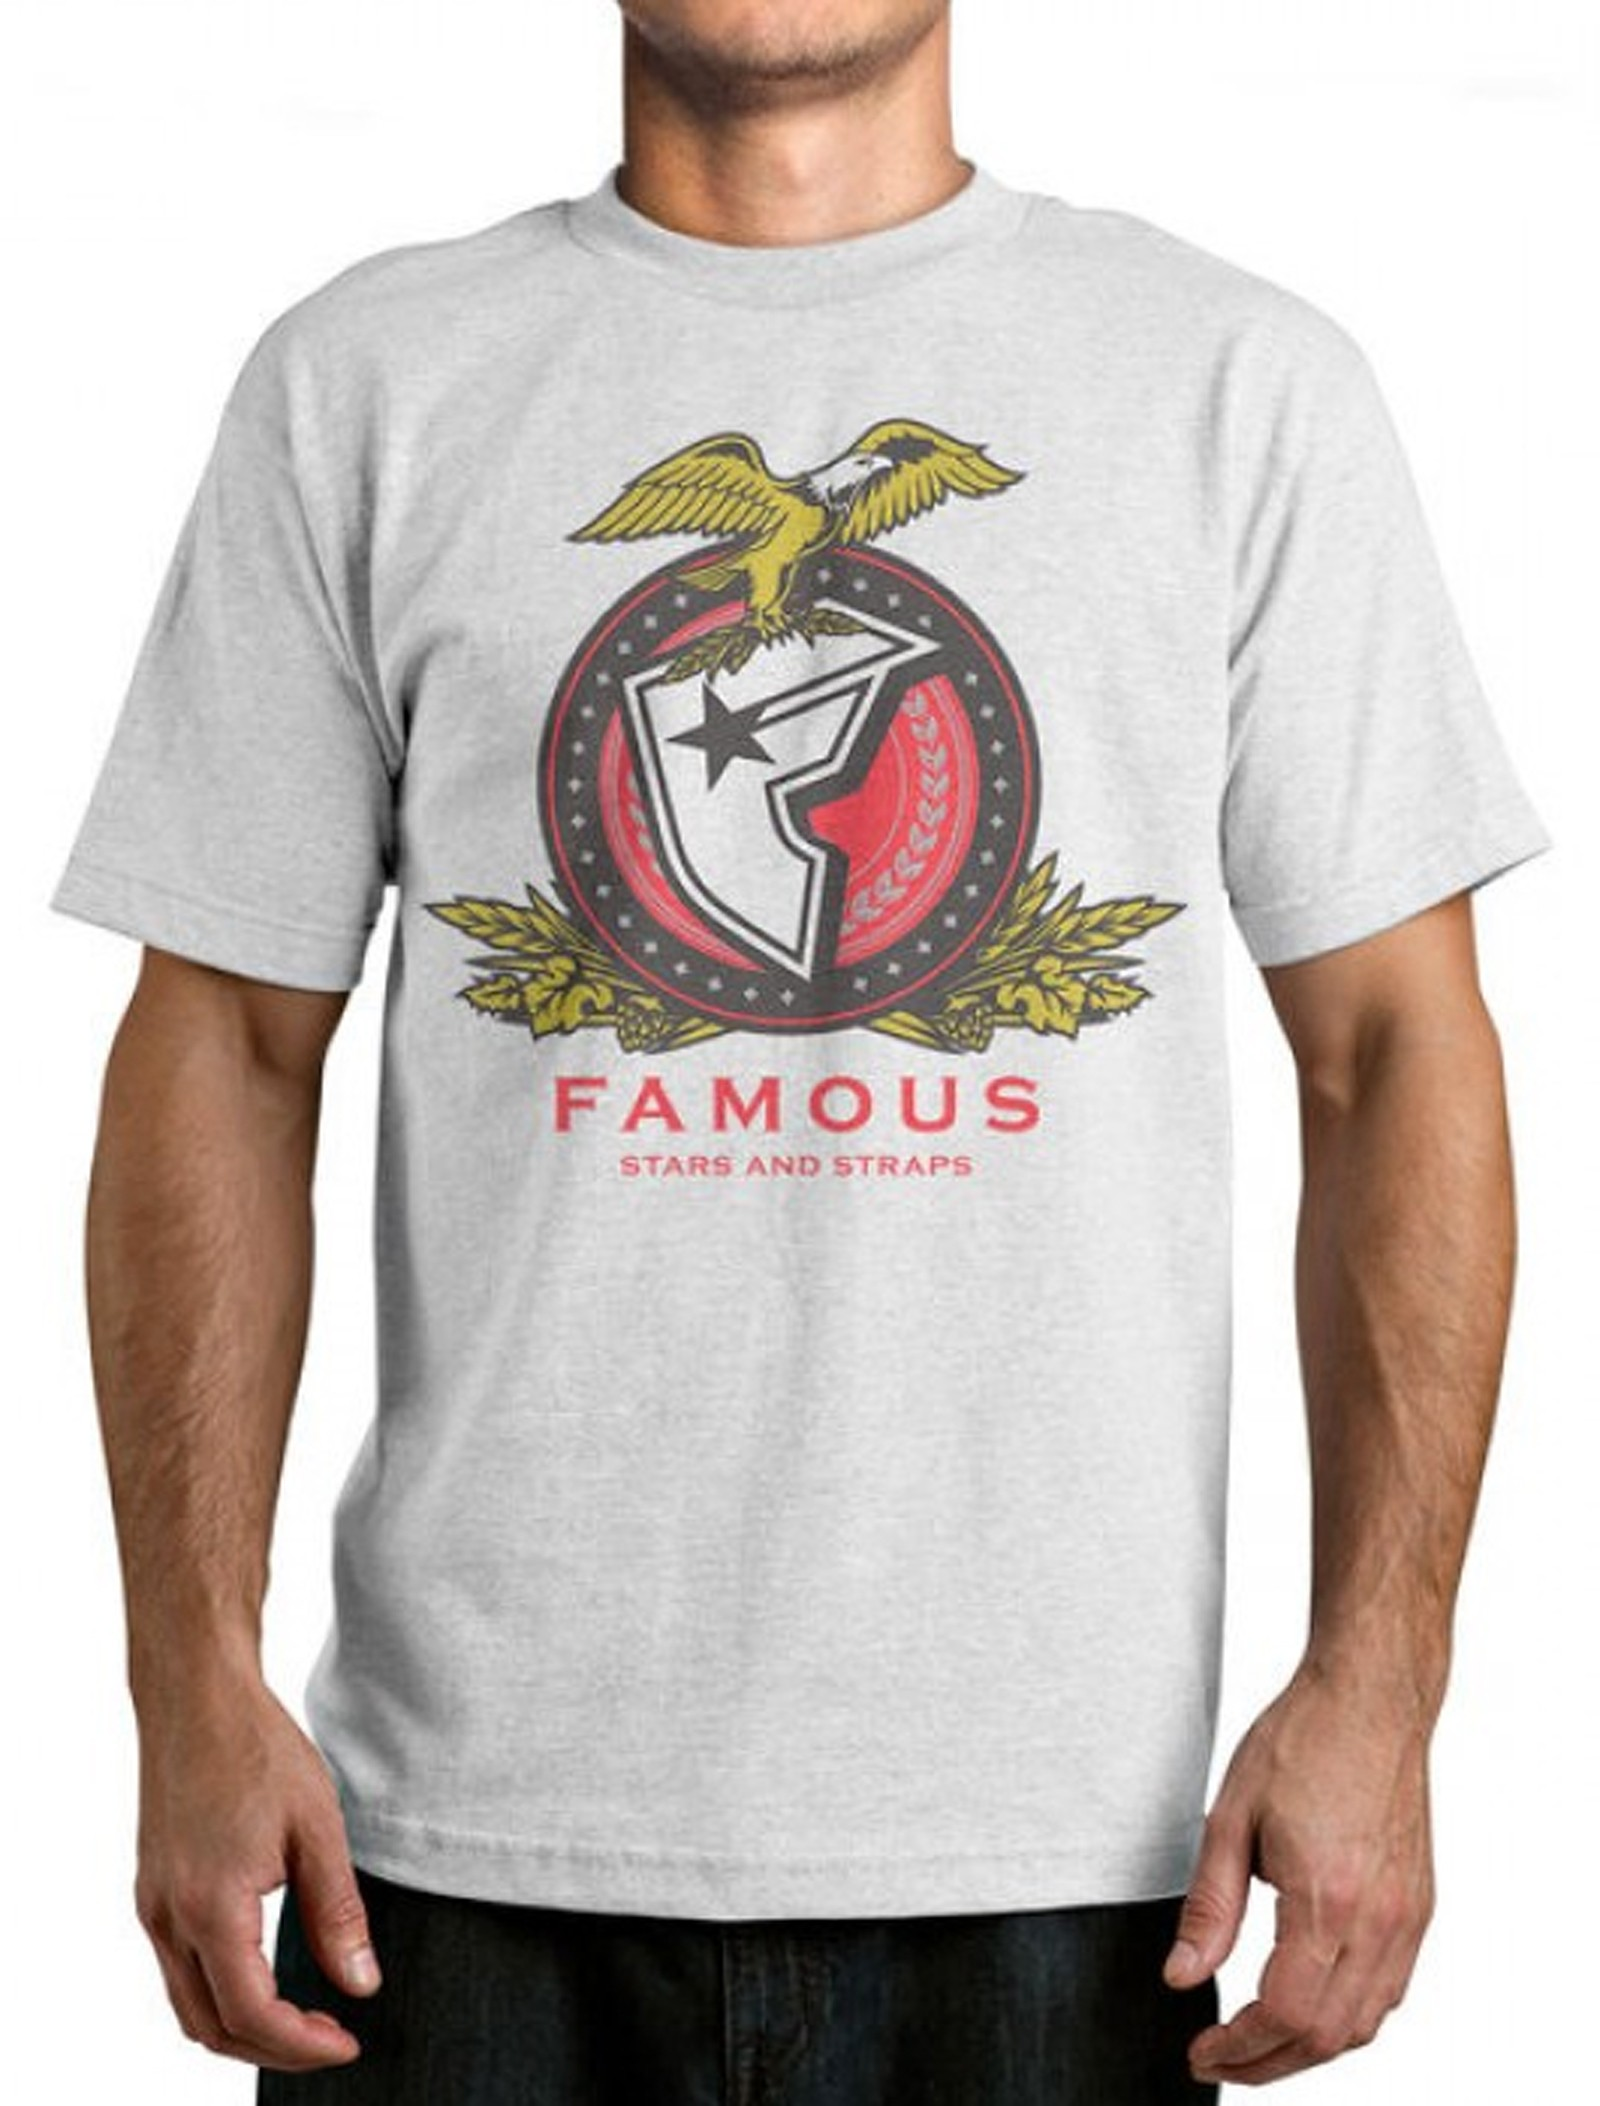 Famous Stars and Straps - Millmatic T-Shirt